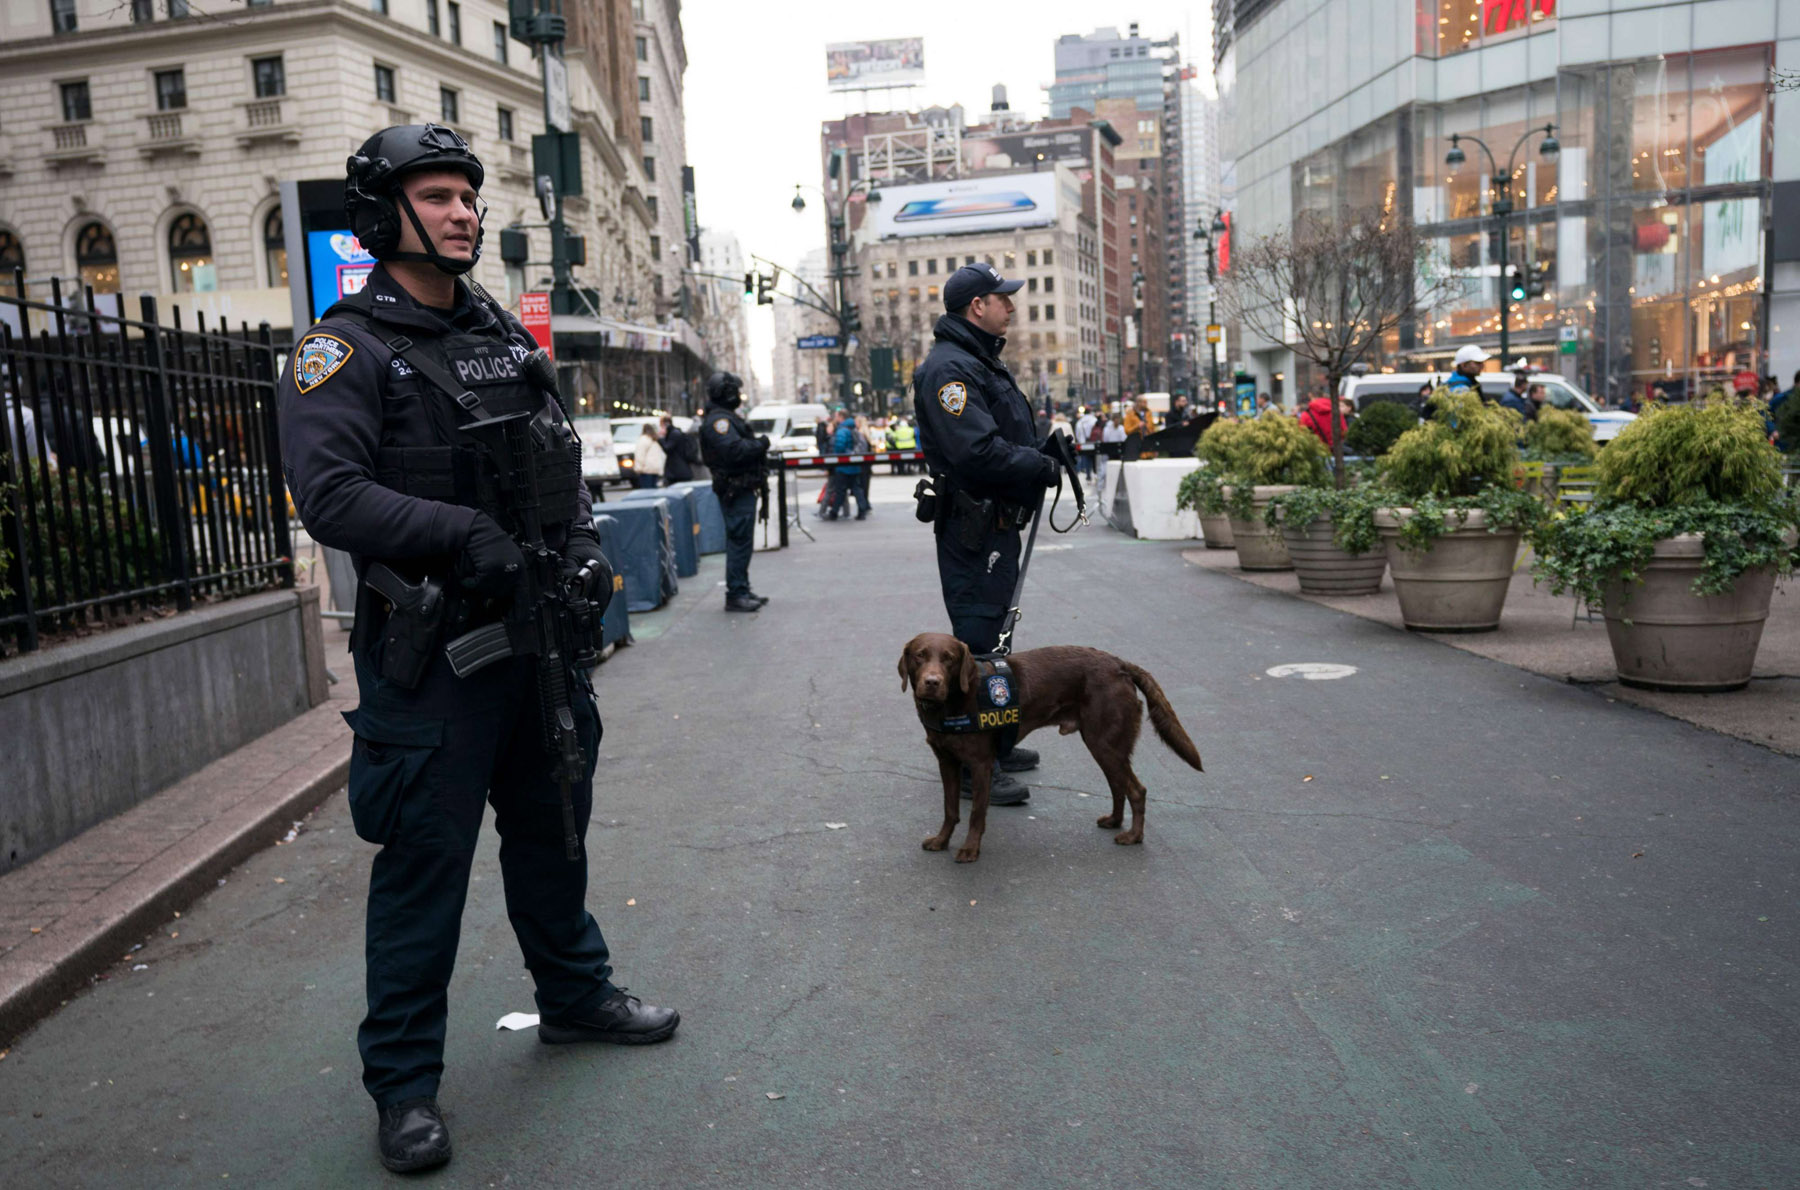 Police officers patrol the area around Herald Square in New York. (AFP)